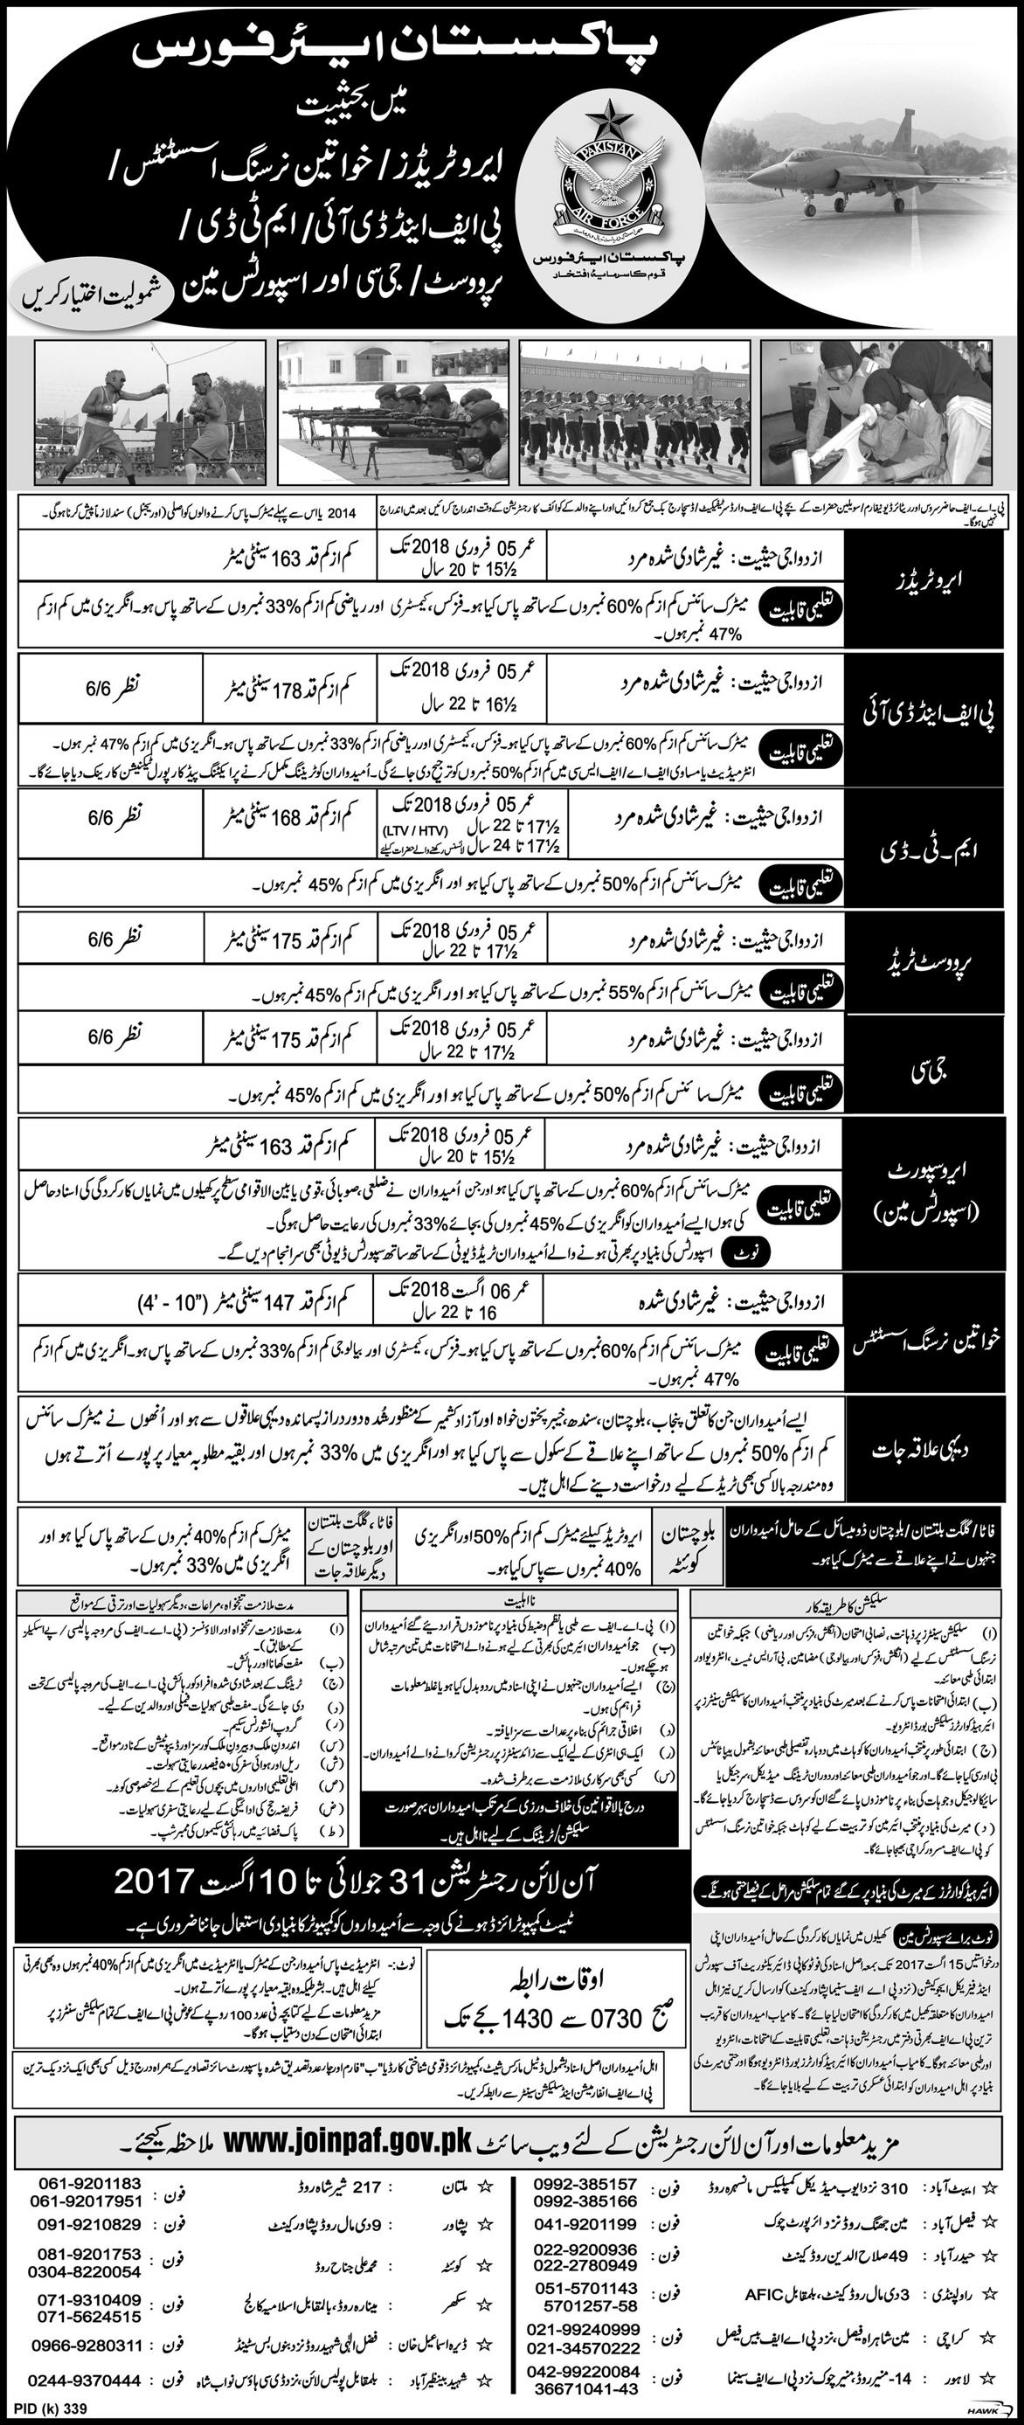 PAF Jobs 2018 For Female, Male Pakistan Air Force Online Form www.joinpaf.gov.pk